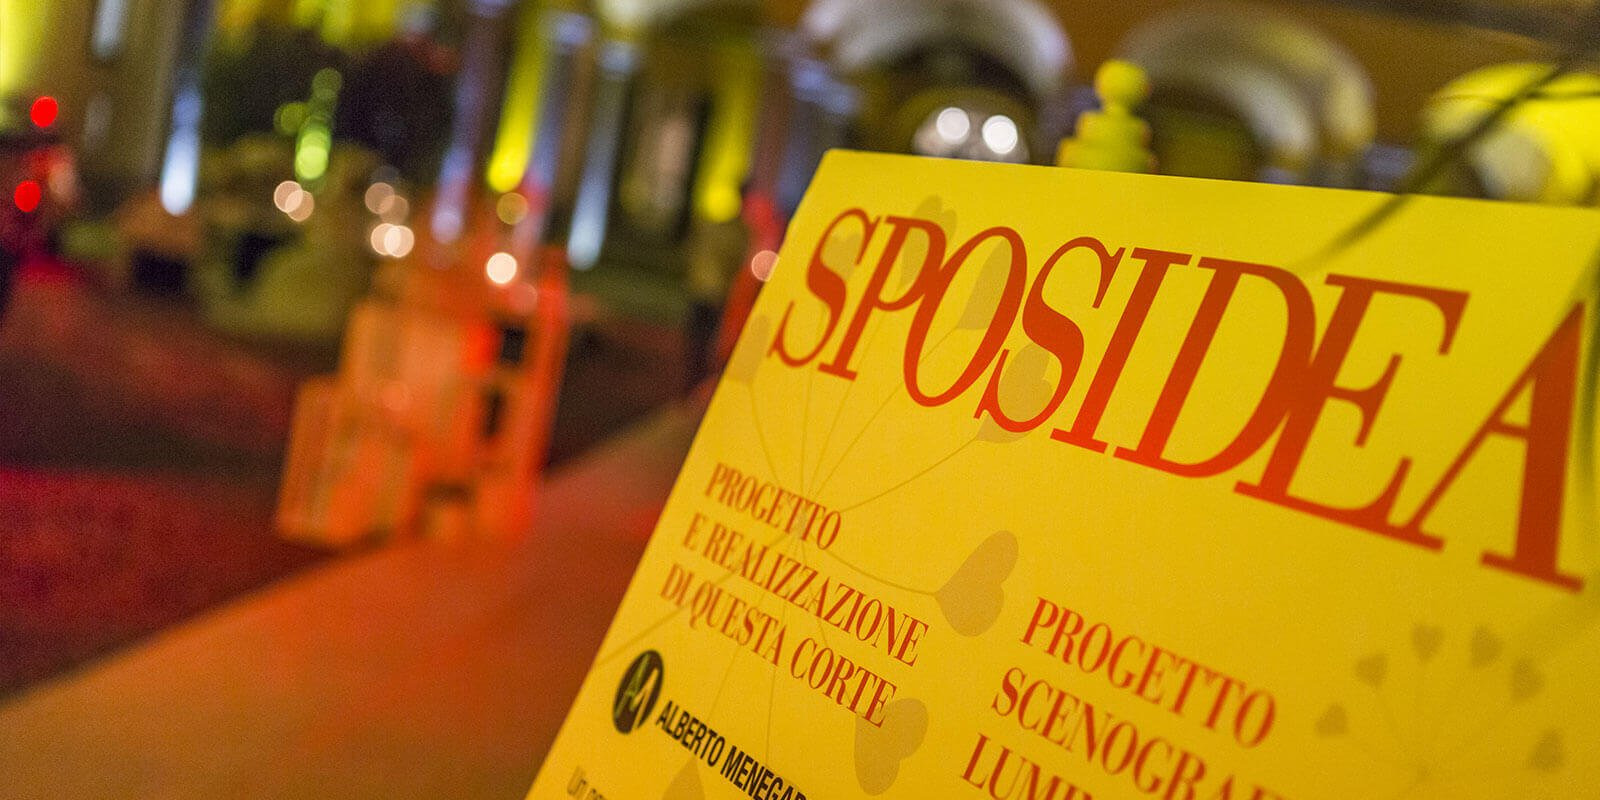 Villacastelbarco | Sposidea, location eventi